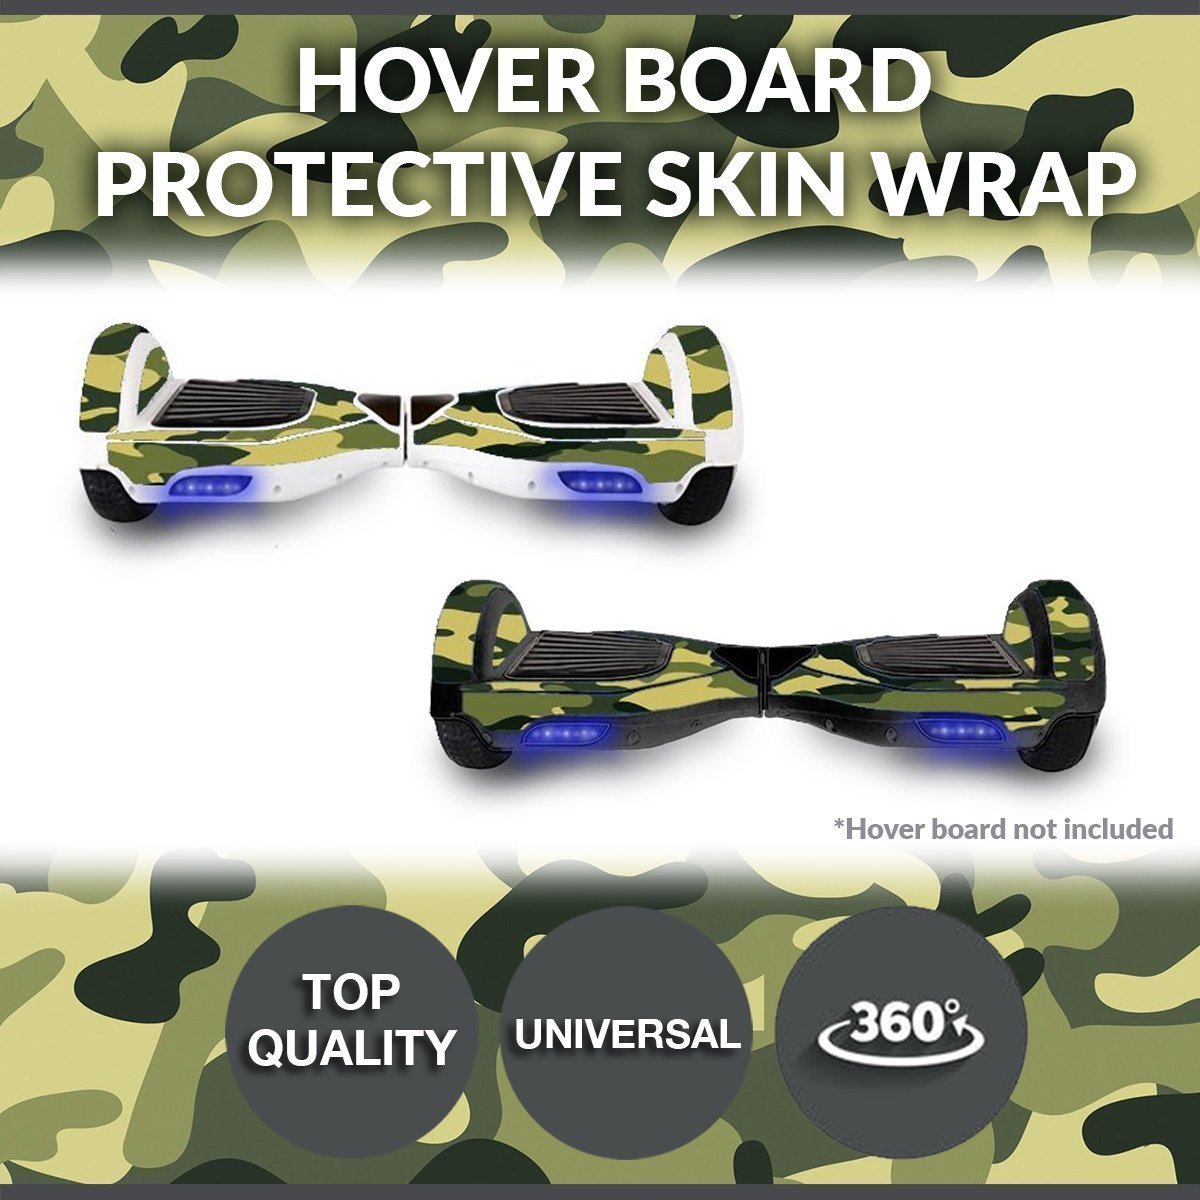 Self Balancing Electric Two Wheel Scooters - Hoverboard Protective Skin Skate Wrap - Balance Scooter Motorized Longboard Stickers Vinyl Decals Real 2 Wheel Protective Cover